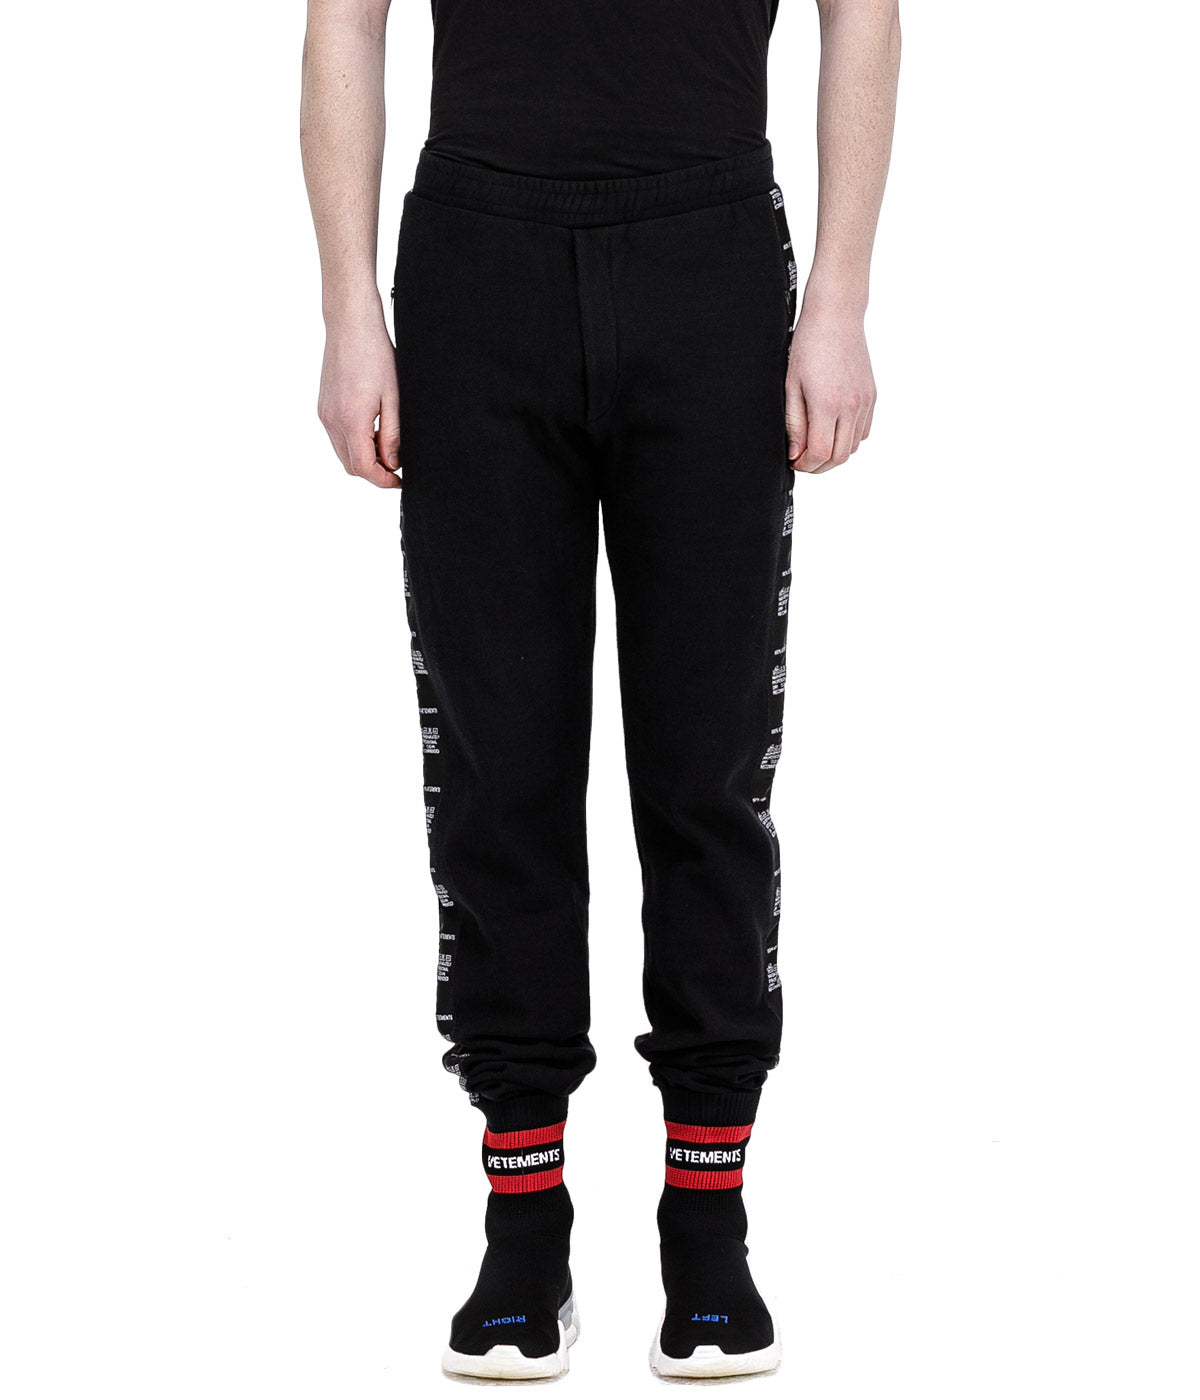 Black Garment Tape Sweatpants